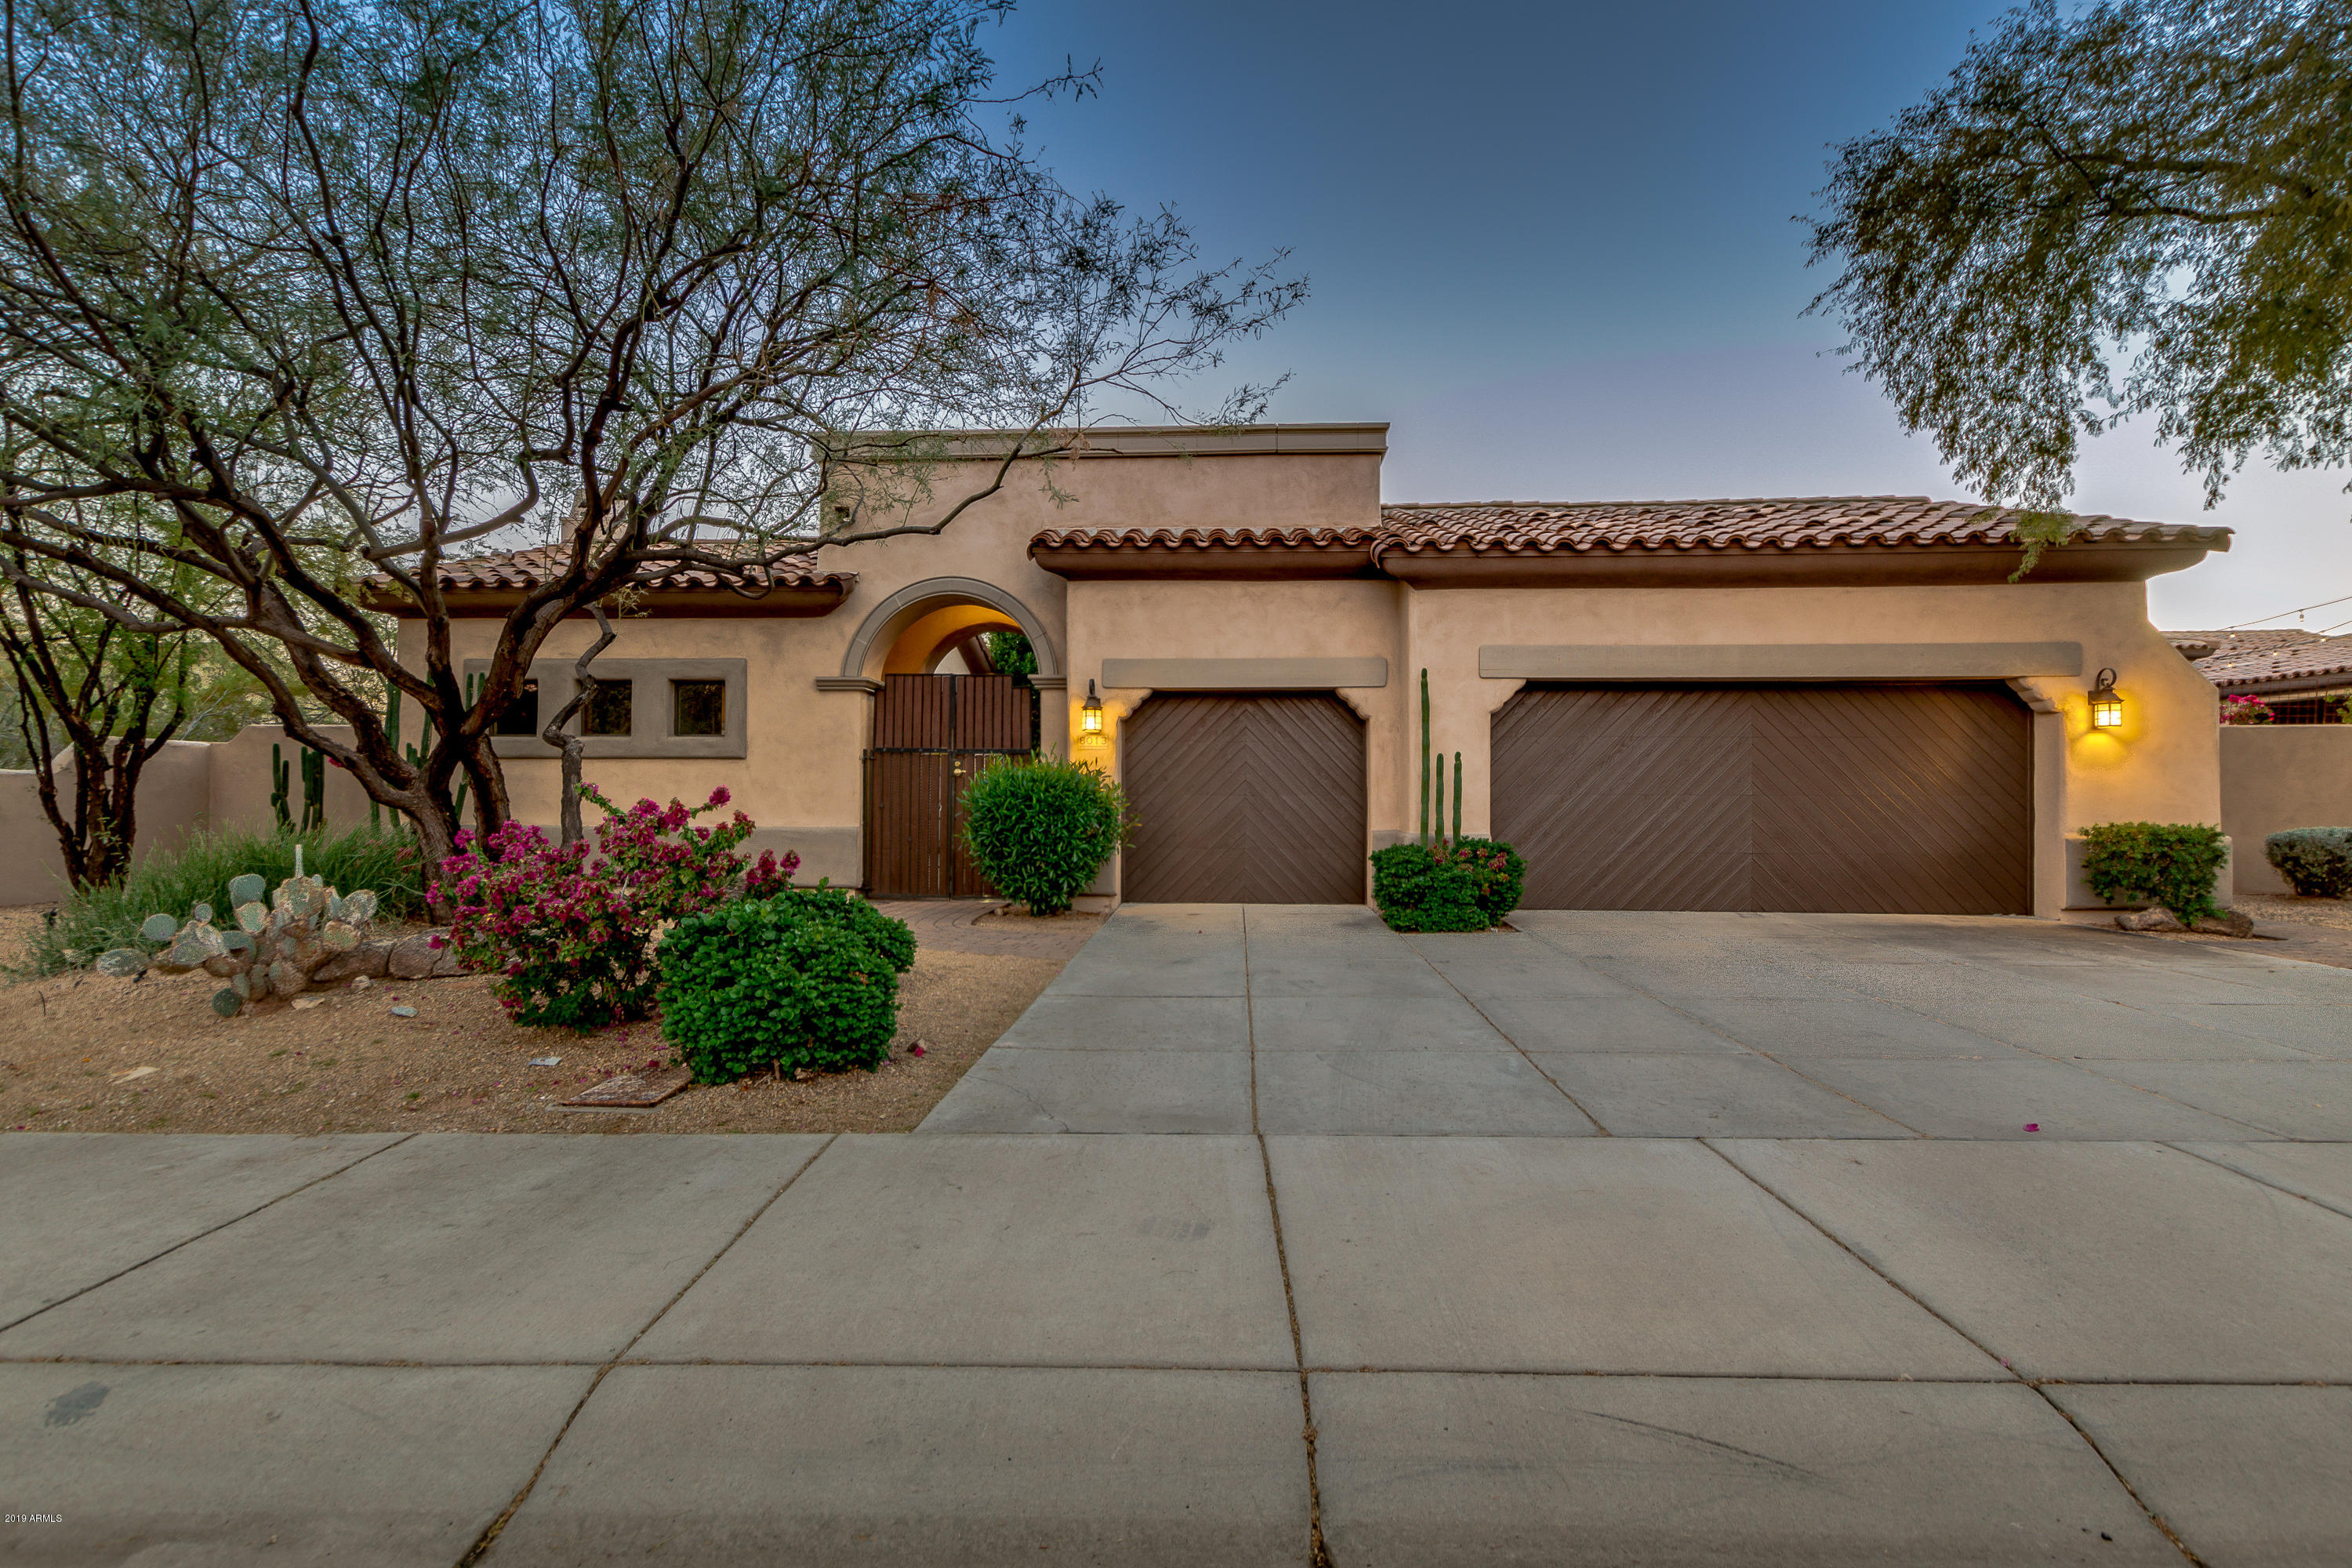 Photo of 8013 E WINGSPAN Way, Scottsdale, AZ 85255